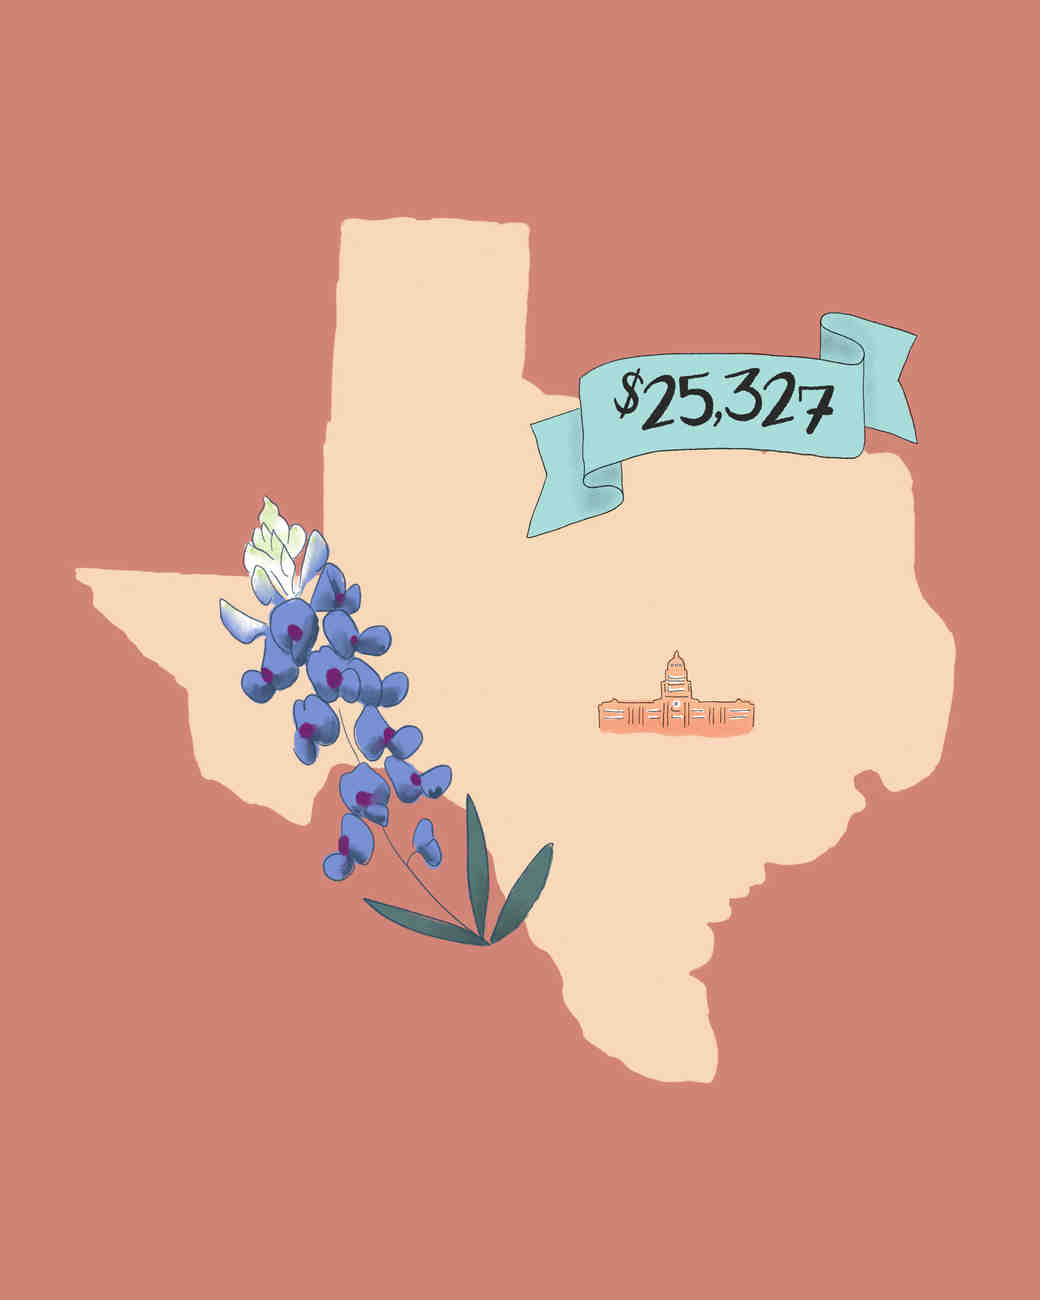 state wedding costs illustration texas